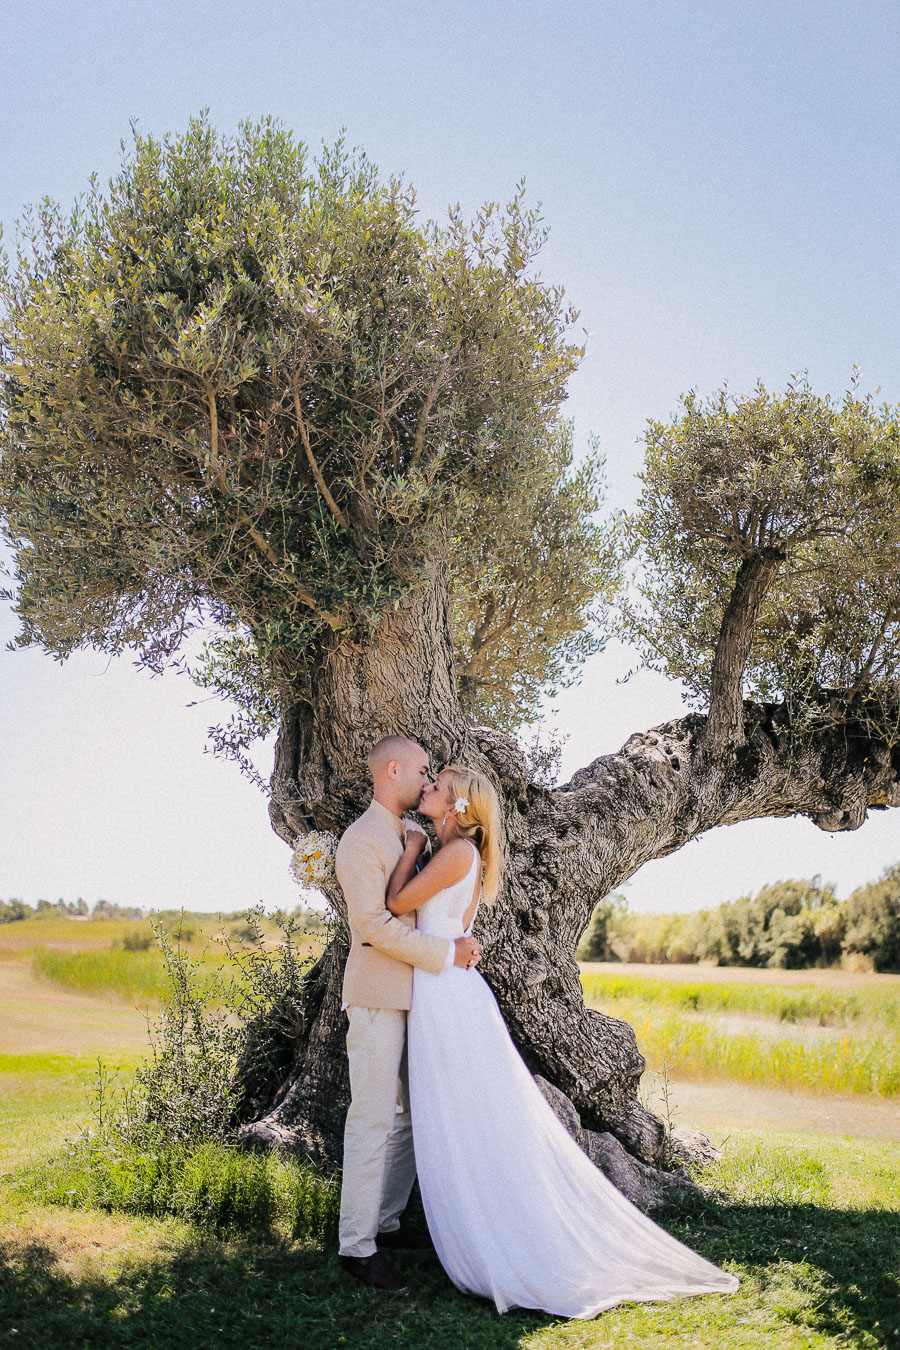 Girona Wedding Photographer & Videographer